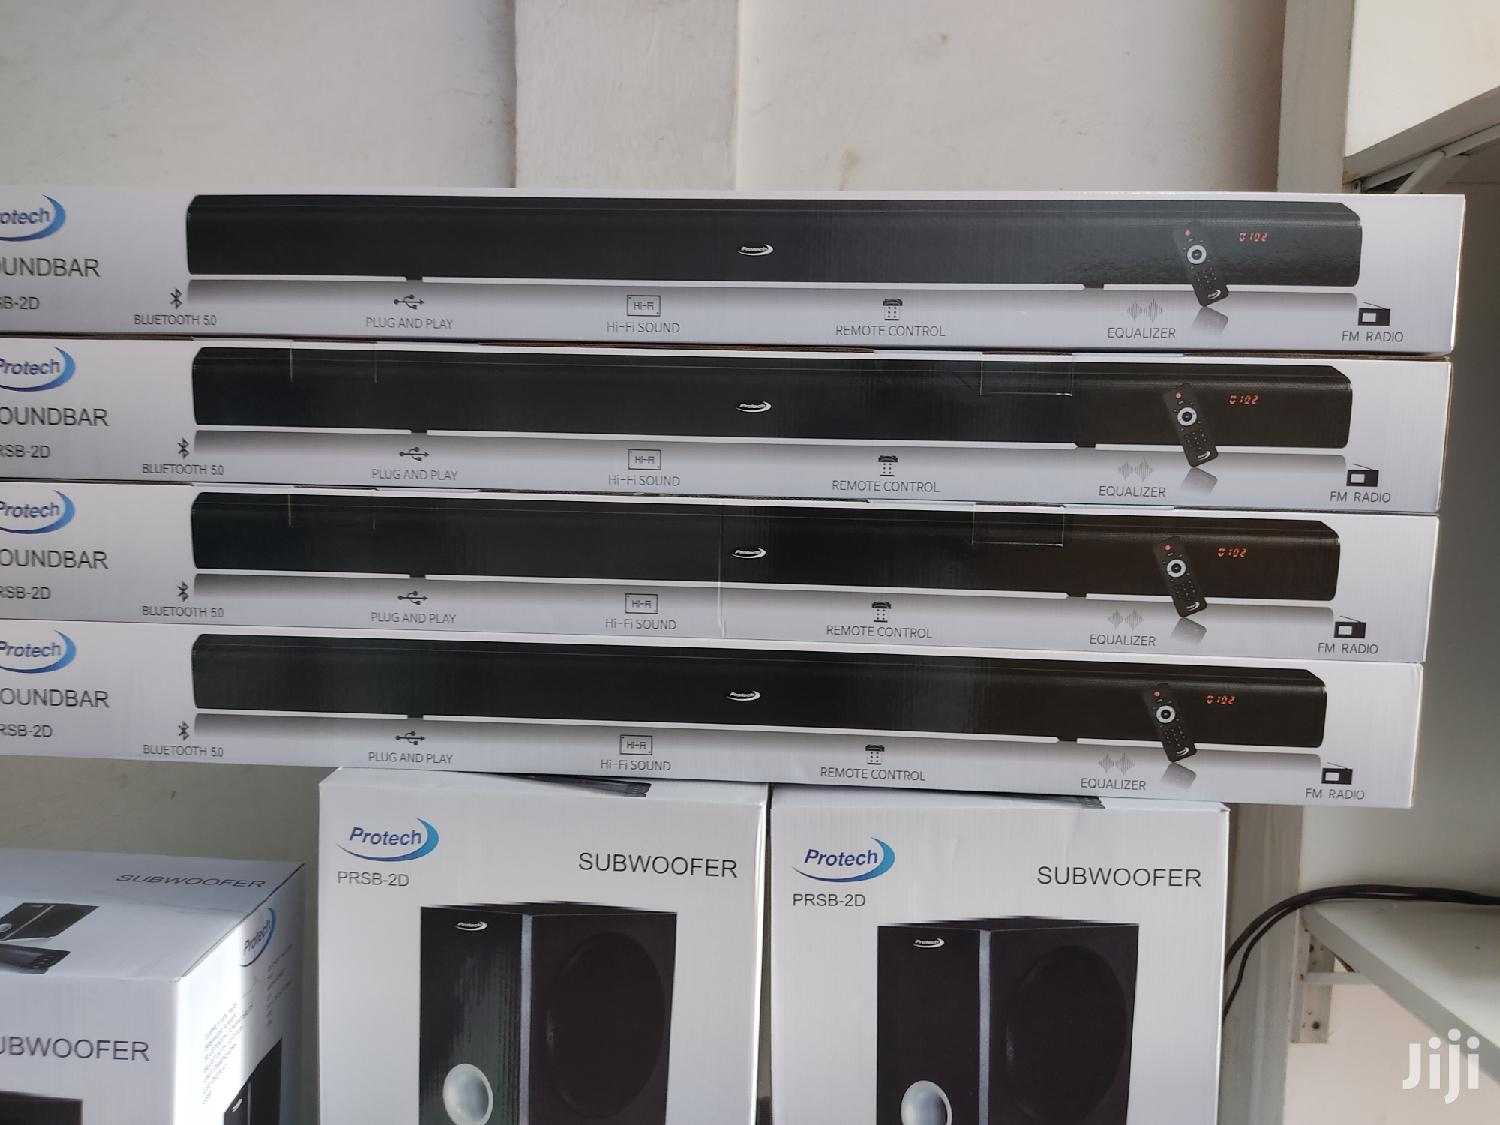 Protech Sound Bar | Audio & Music Equipment for sale in Odorkor, Greater Accra, Ghana